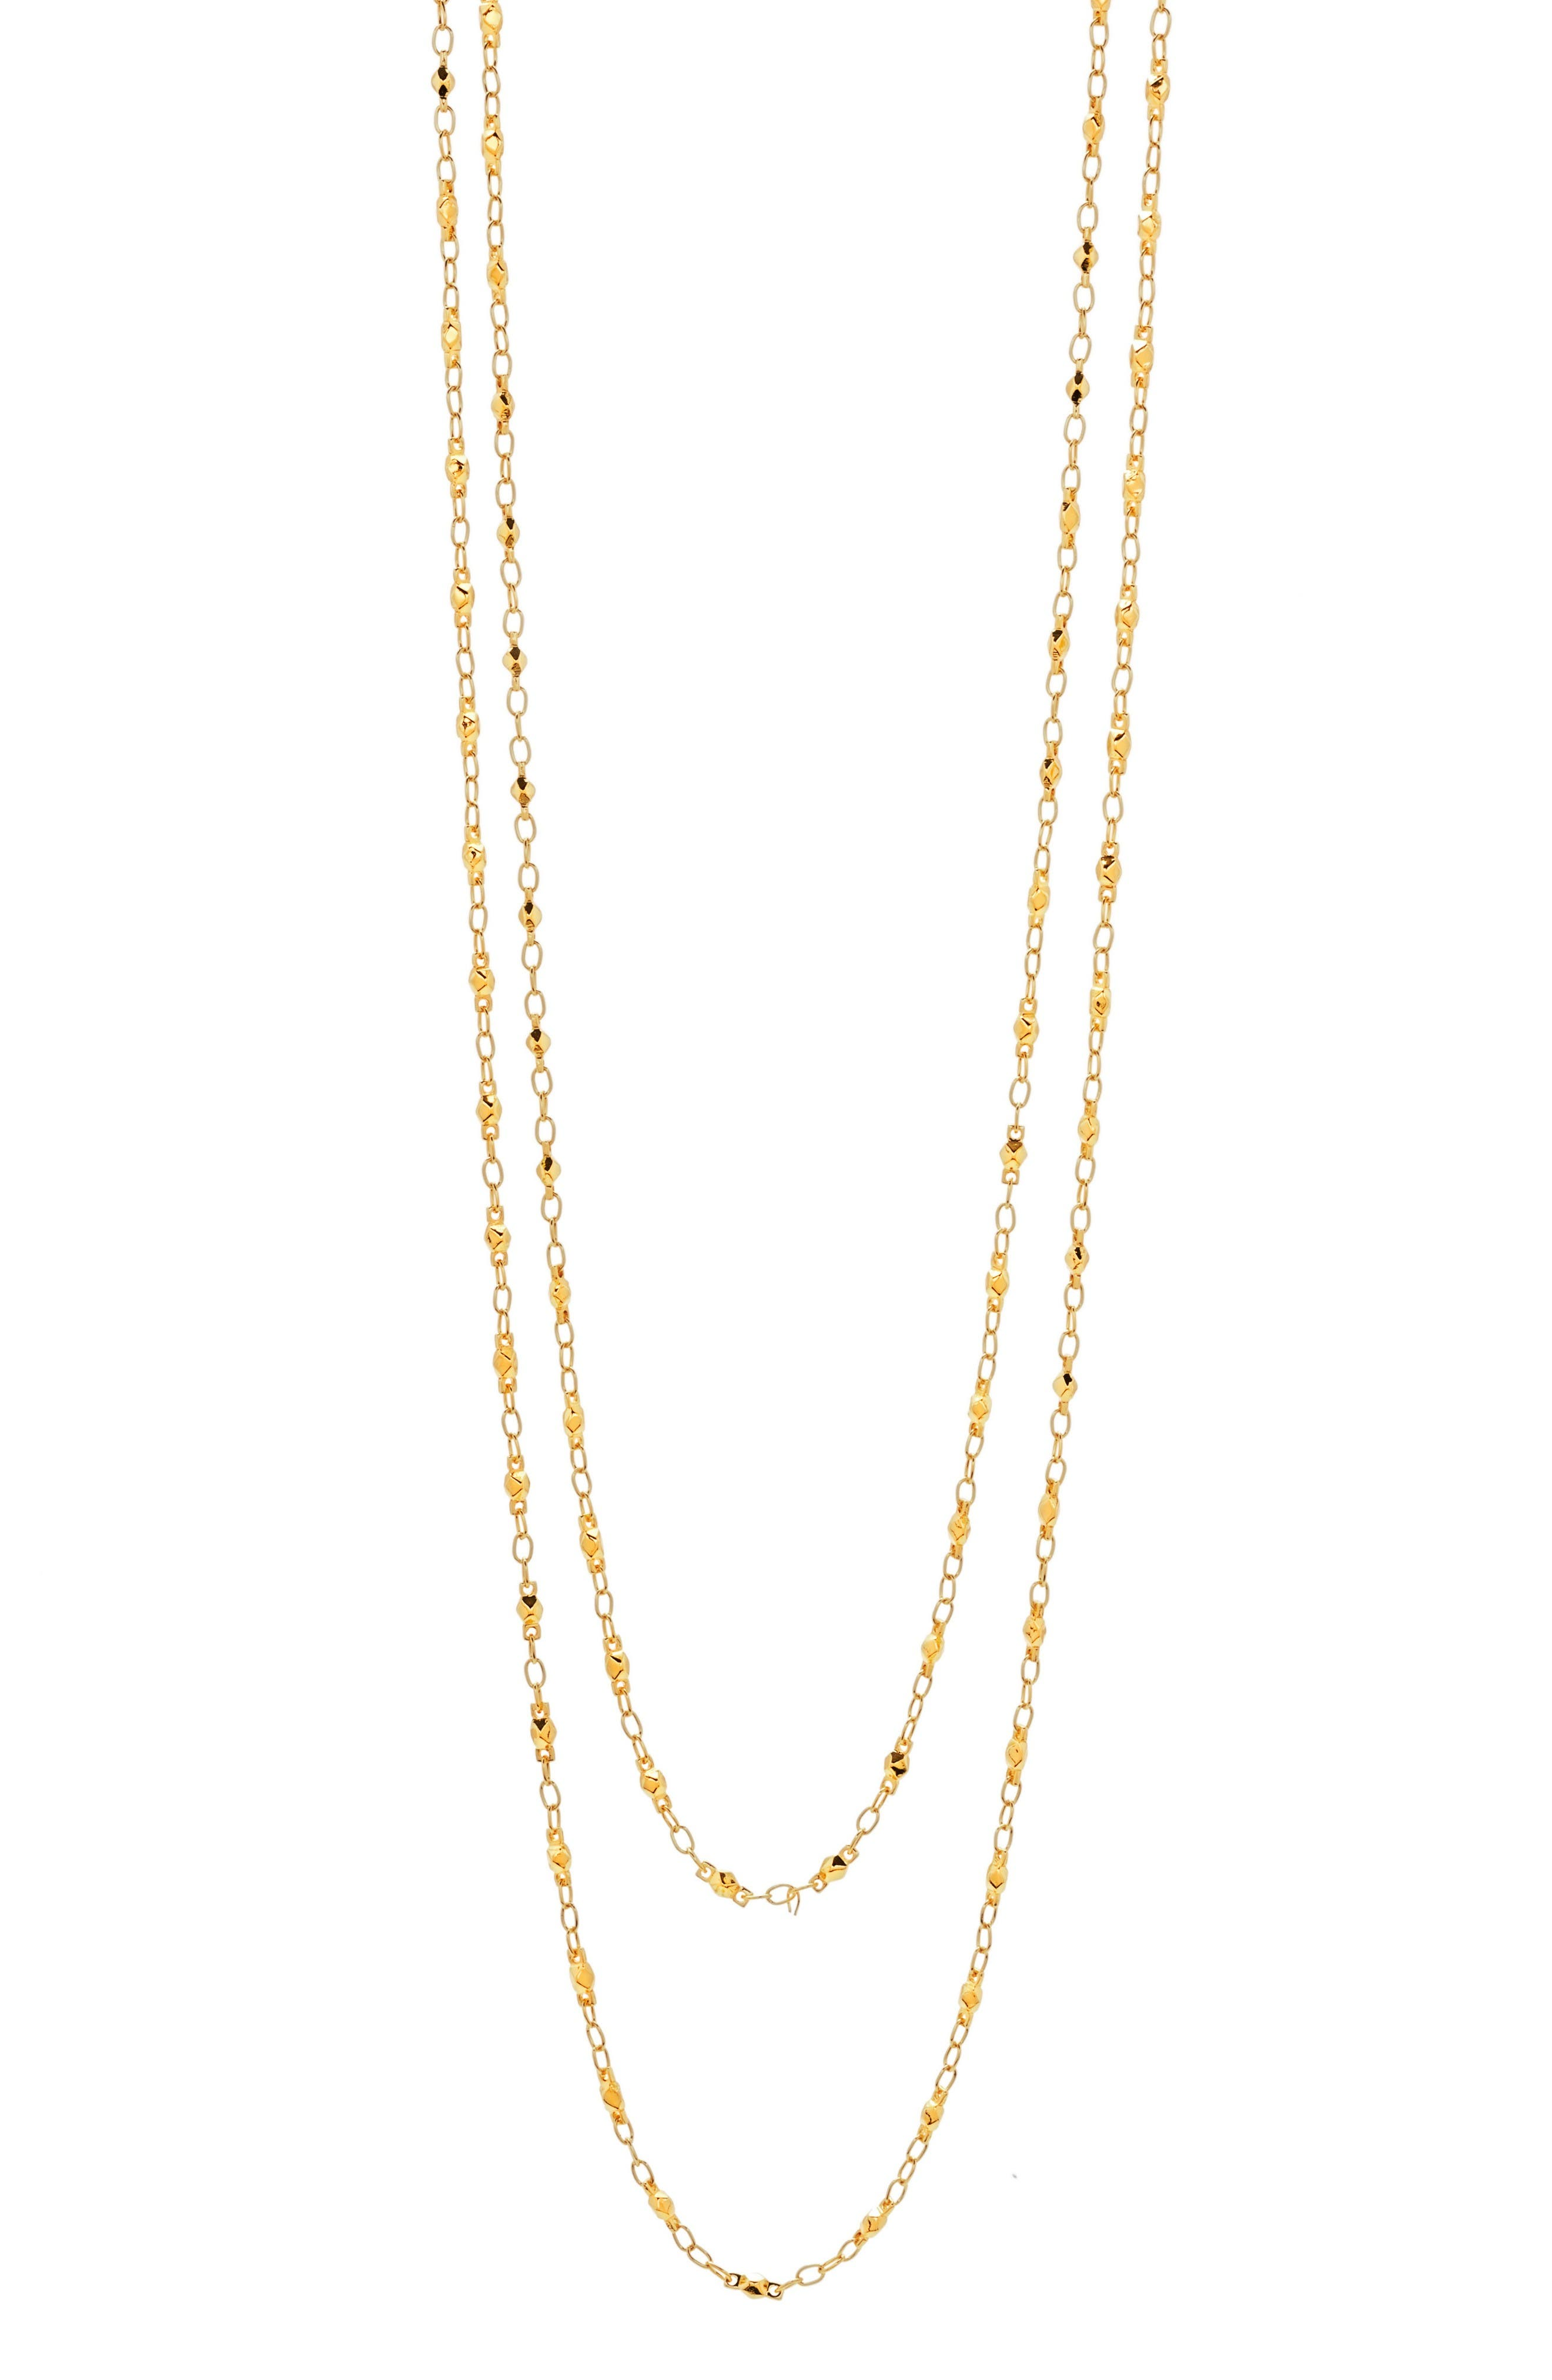 Multistrand Beaded Necklace,                             Alternate thumbnail 2, color,                             Gold